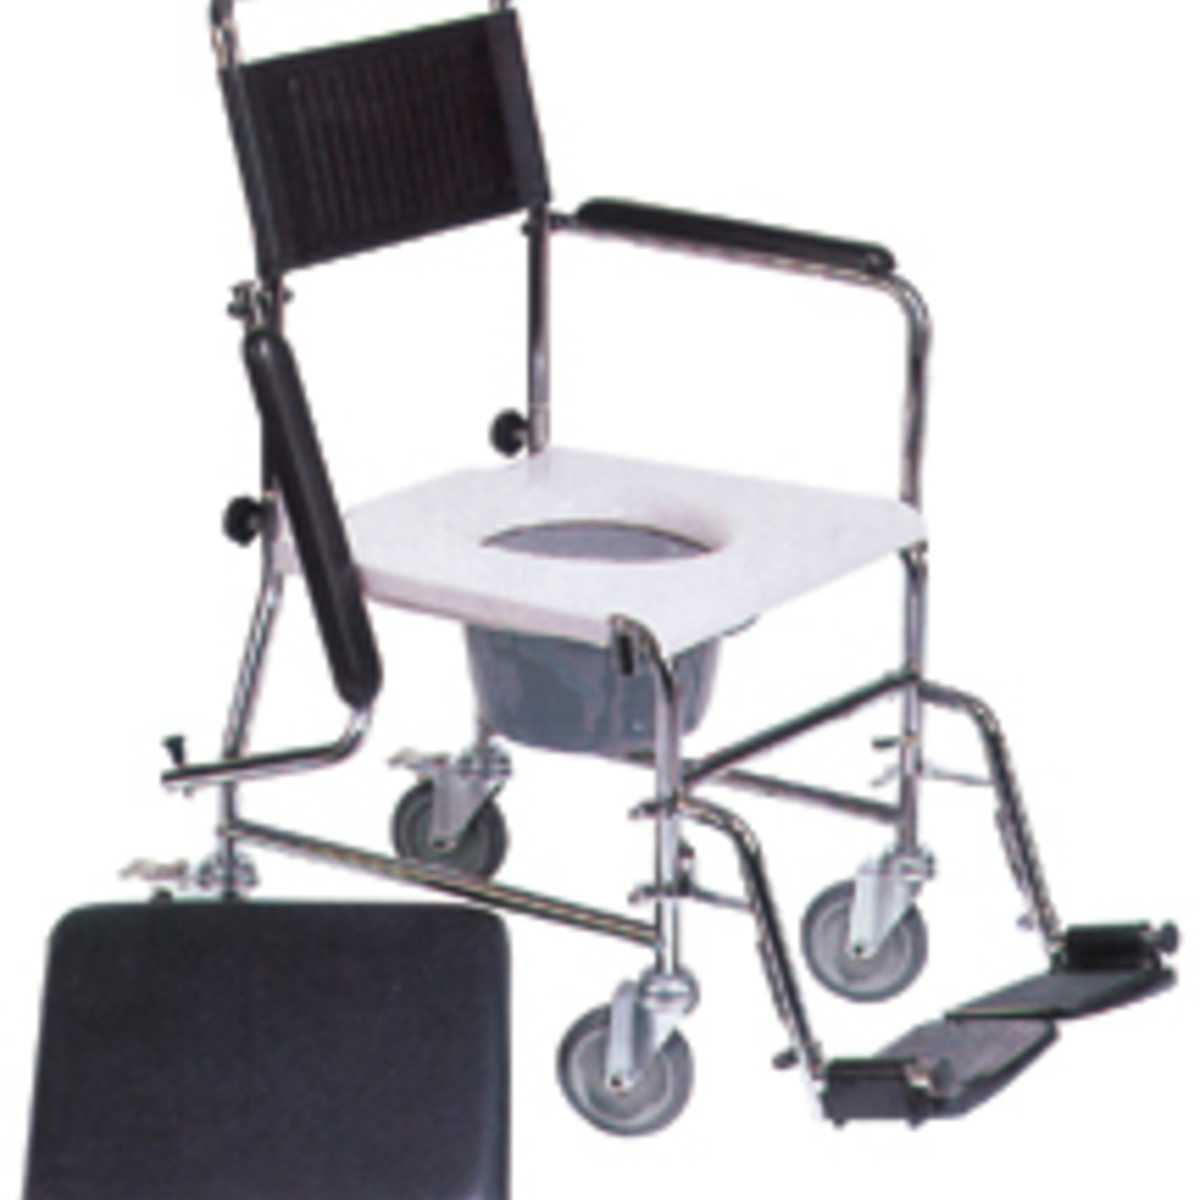 Portable Commode With Wheels